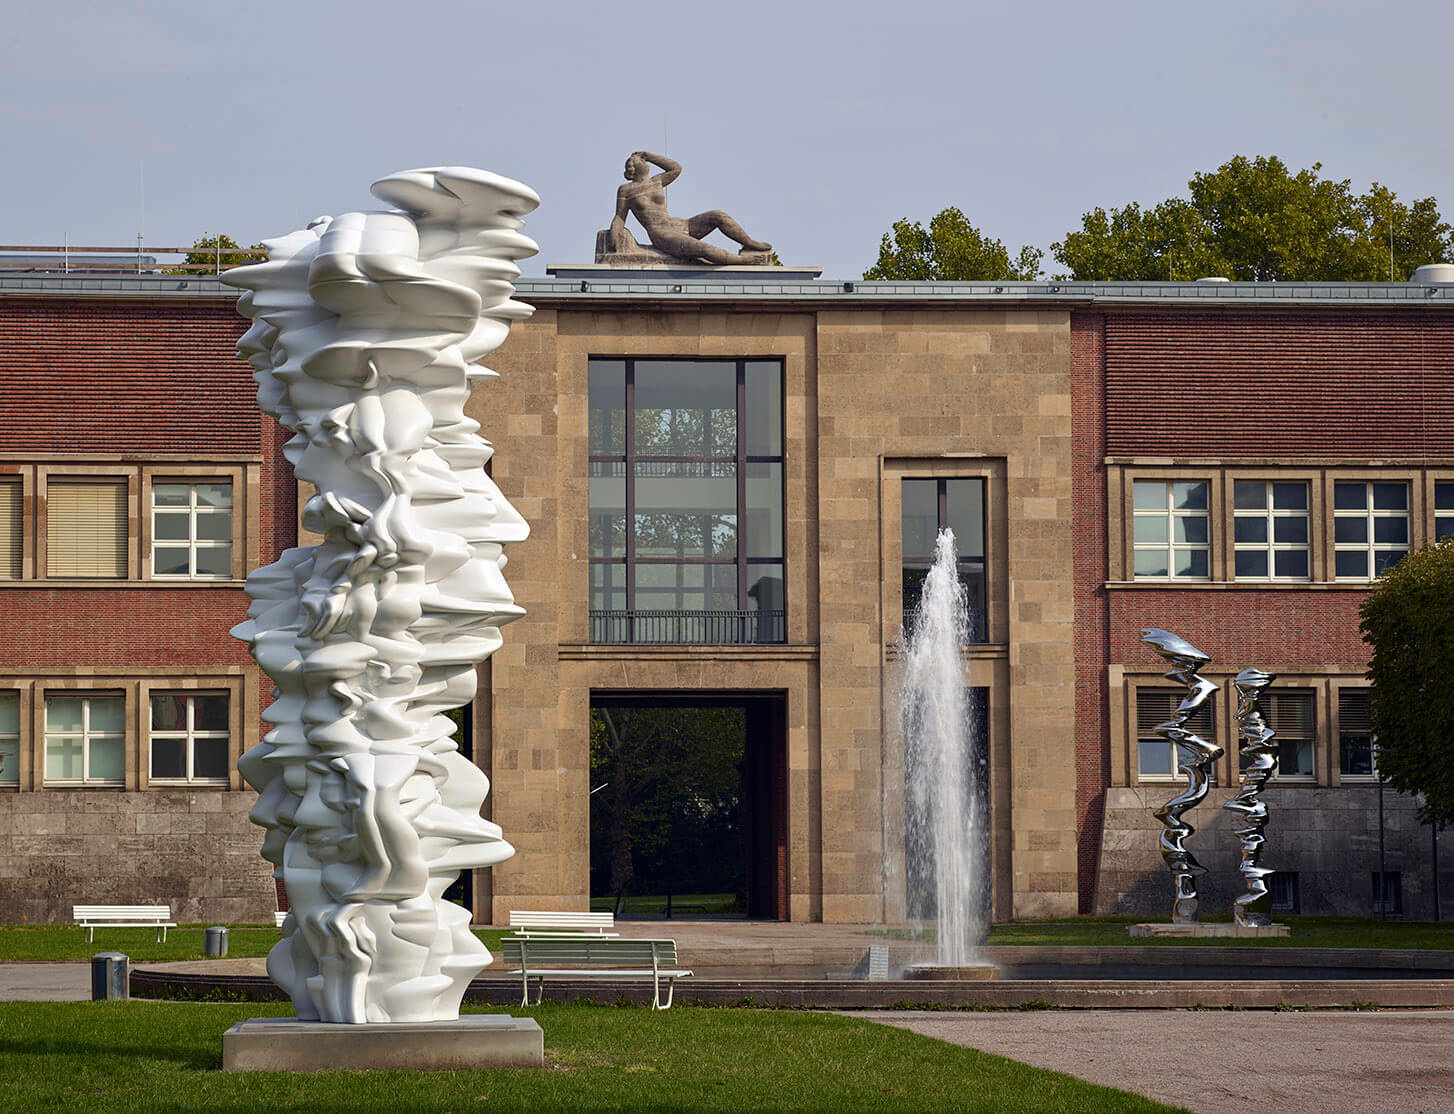 Works by Tony Cragg on view at Museum Kunstpalast in Düsseldorf